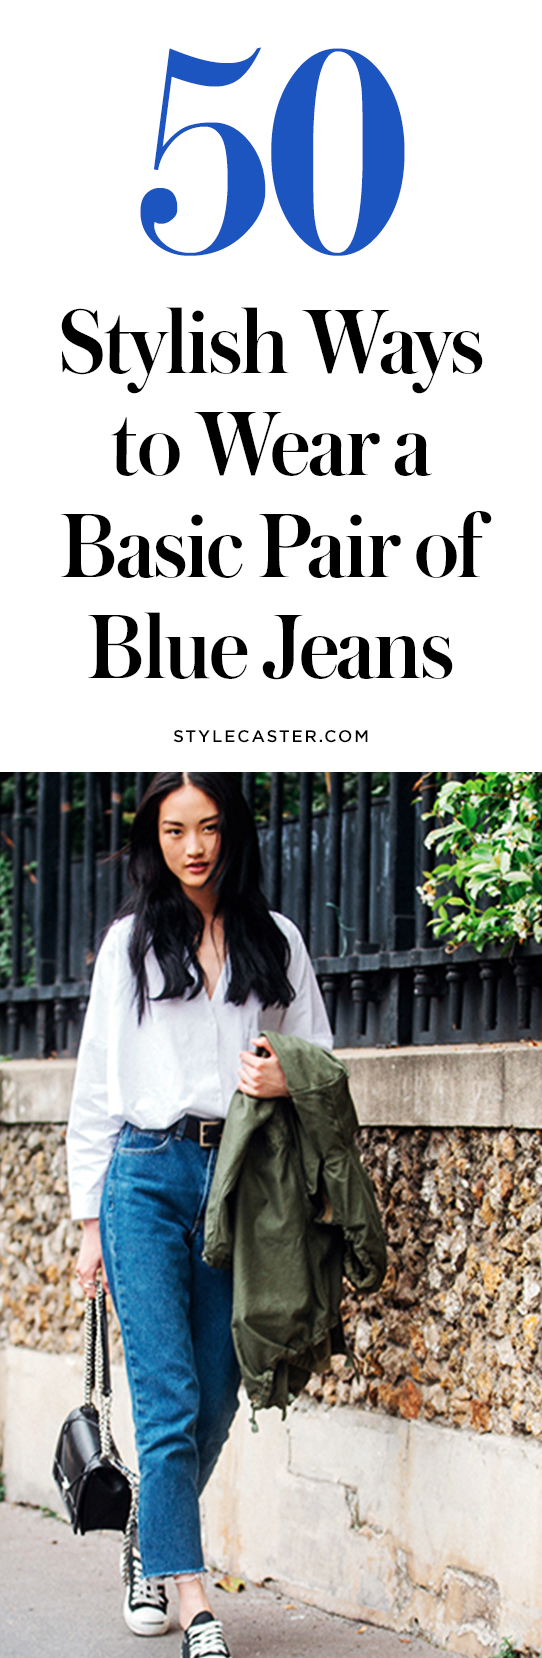 How to wear blue jeans | @stylecaster